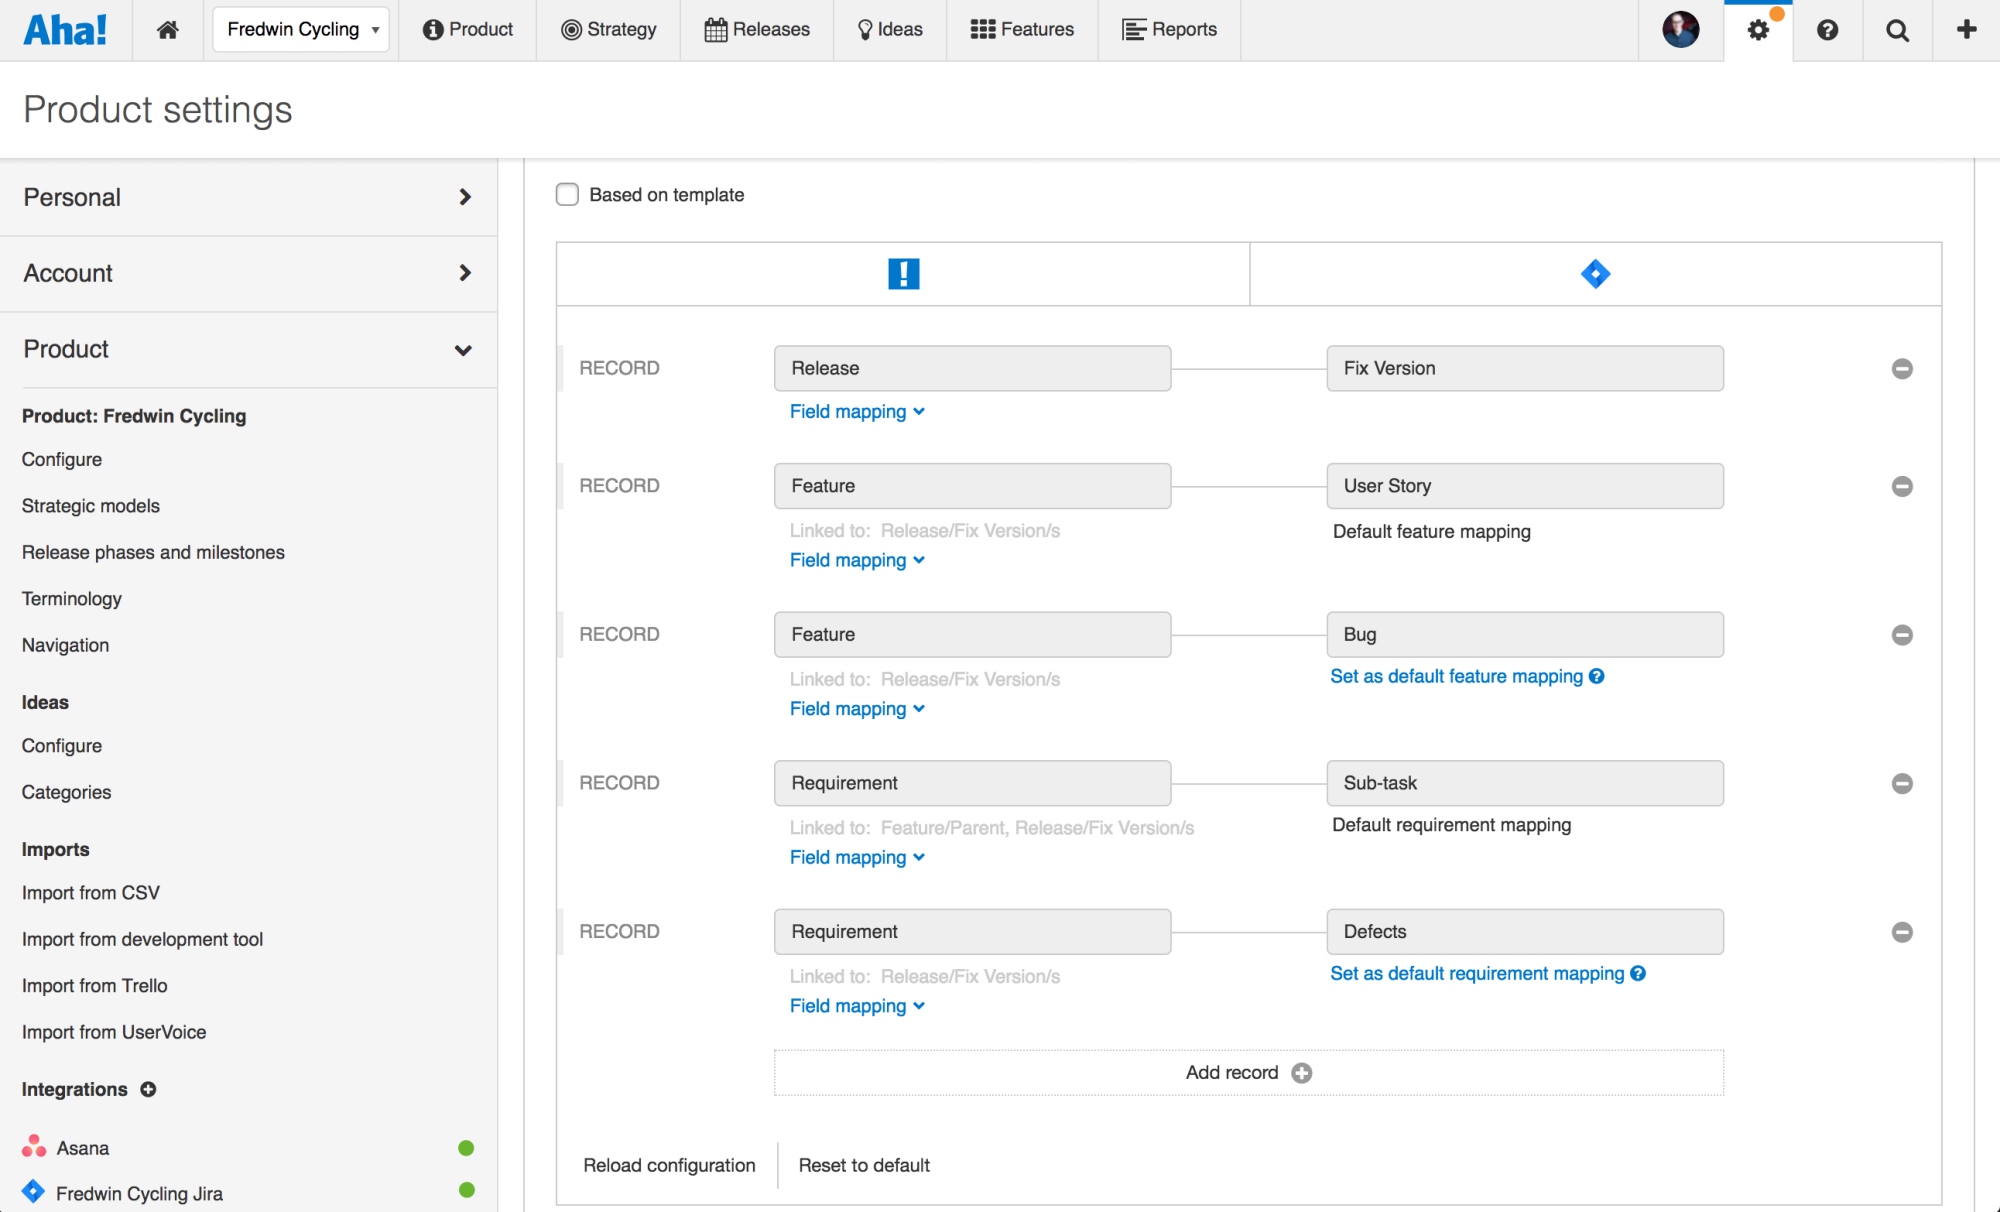 Blog - Just Launched! — New Options for Integrating Aha! With Jira, VSTS, and TFS - inline image